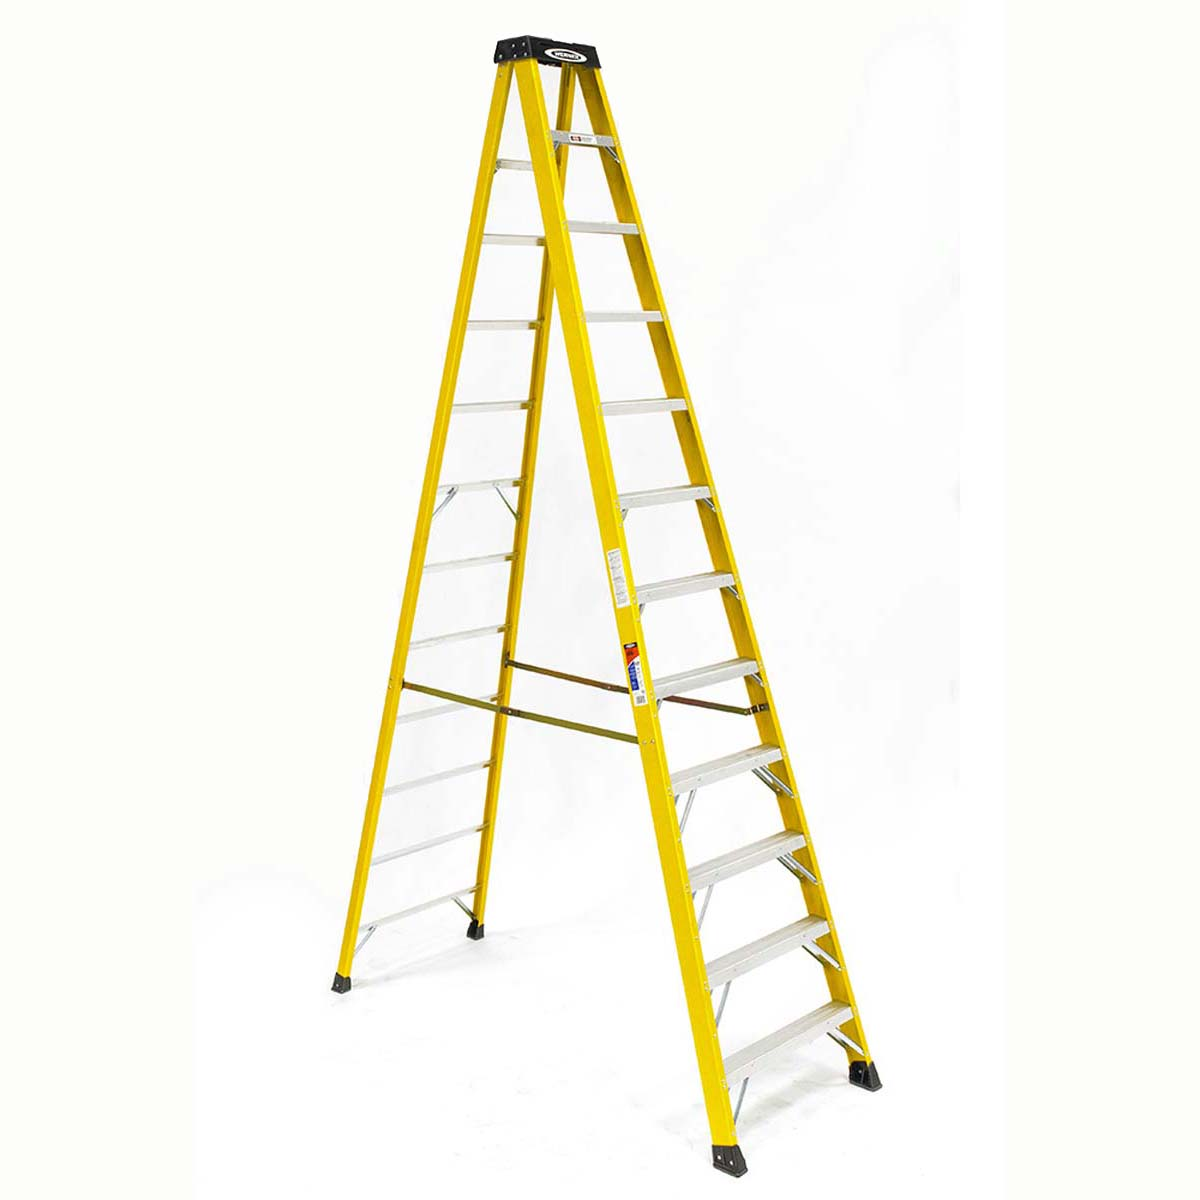 Fiberglass 12 ft Step Ladder